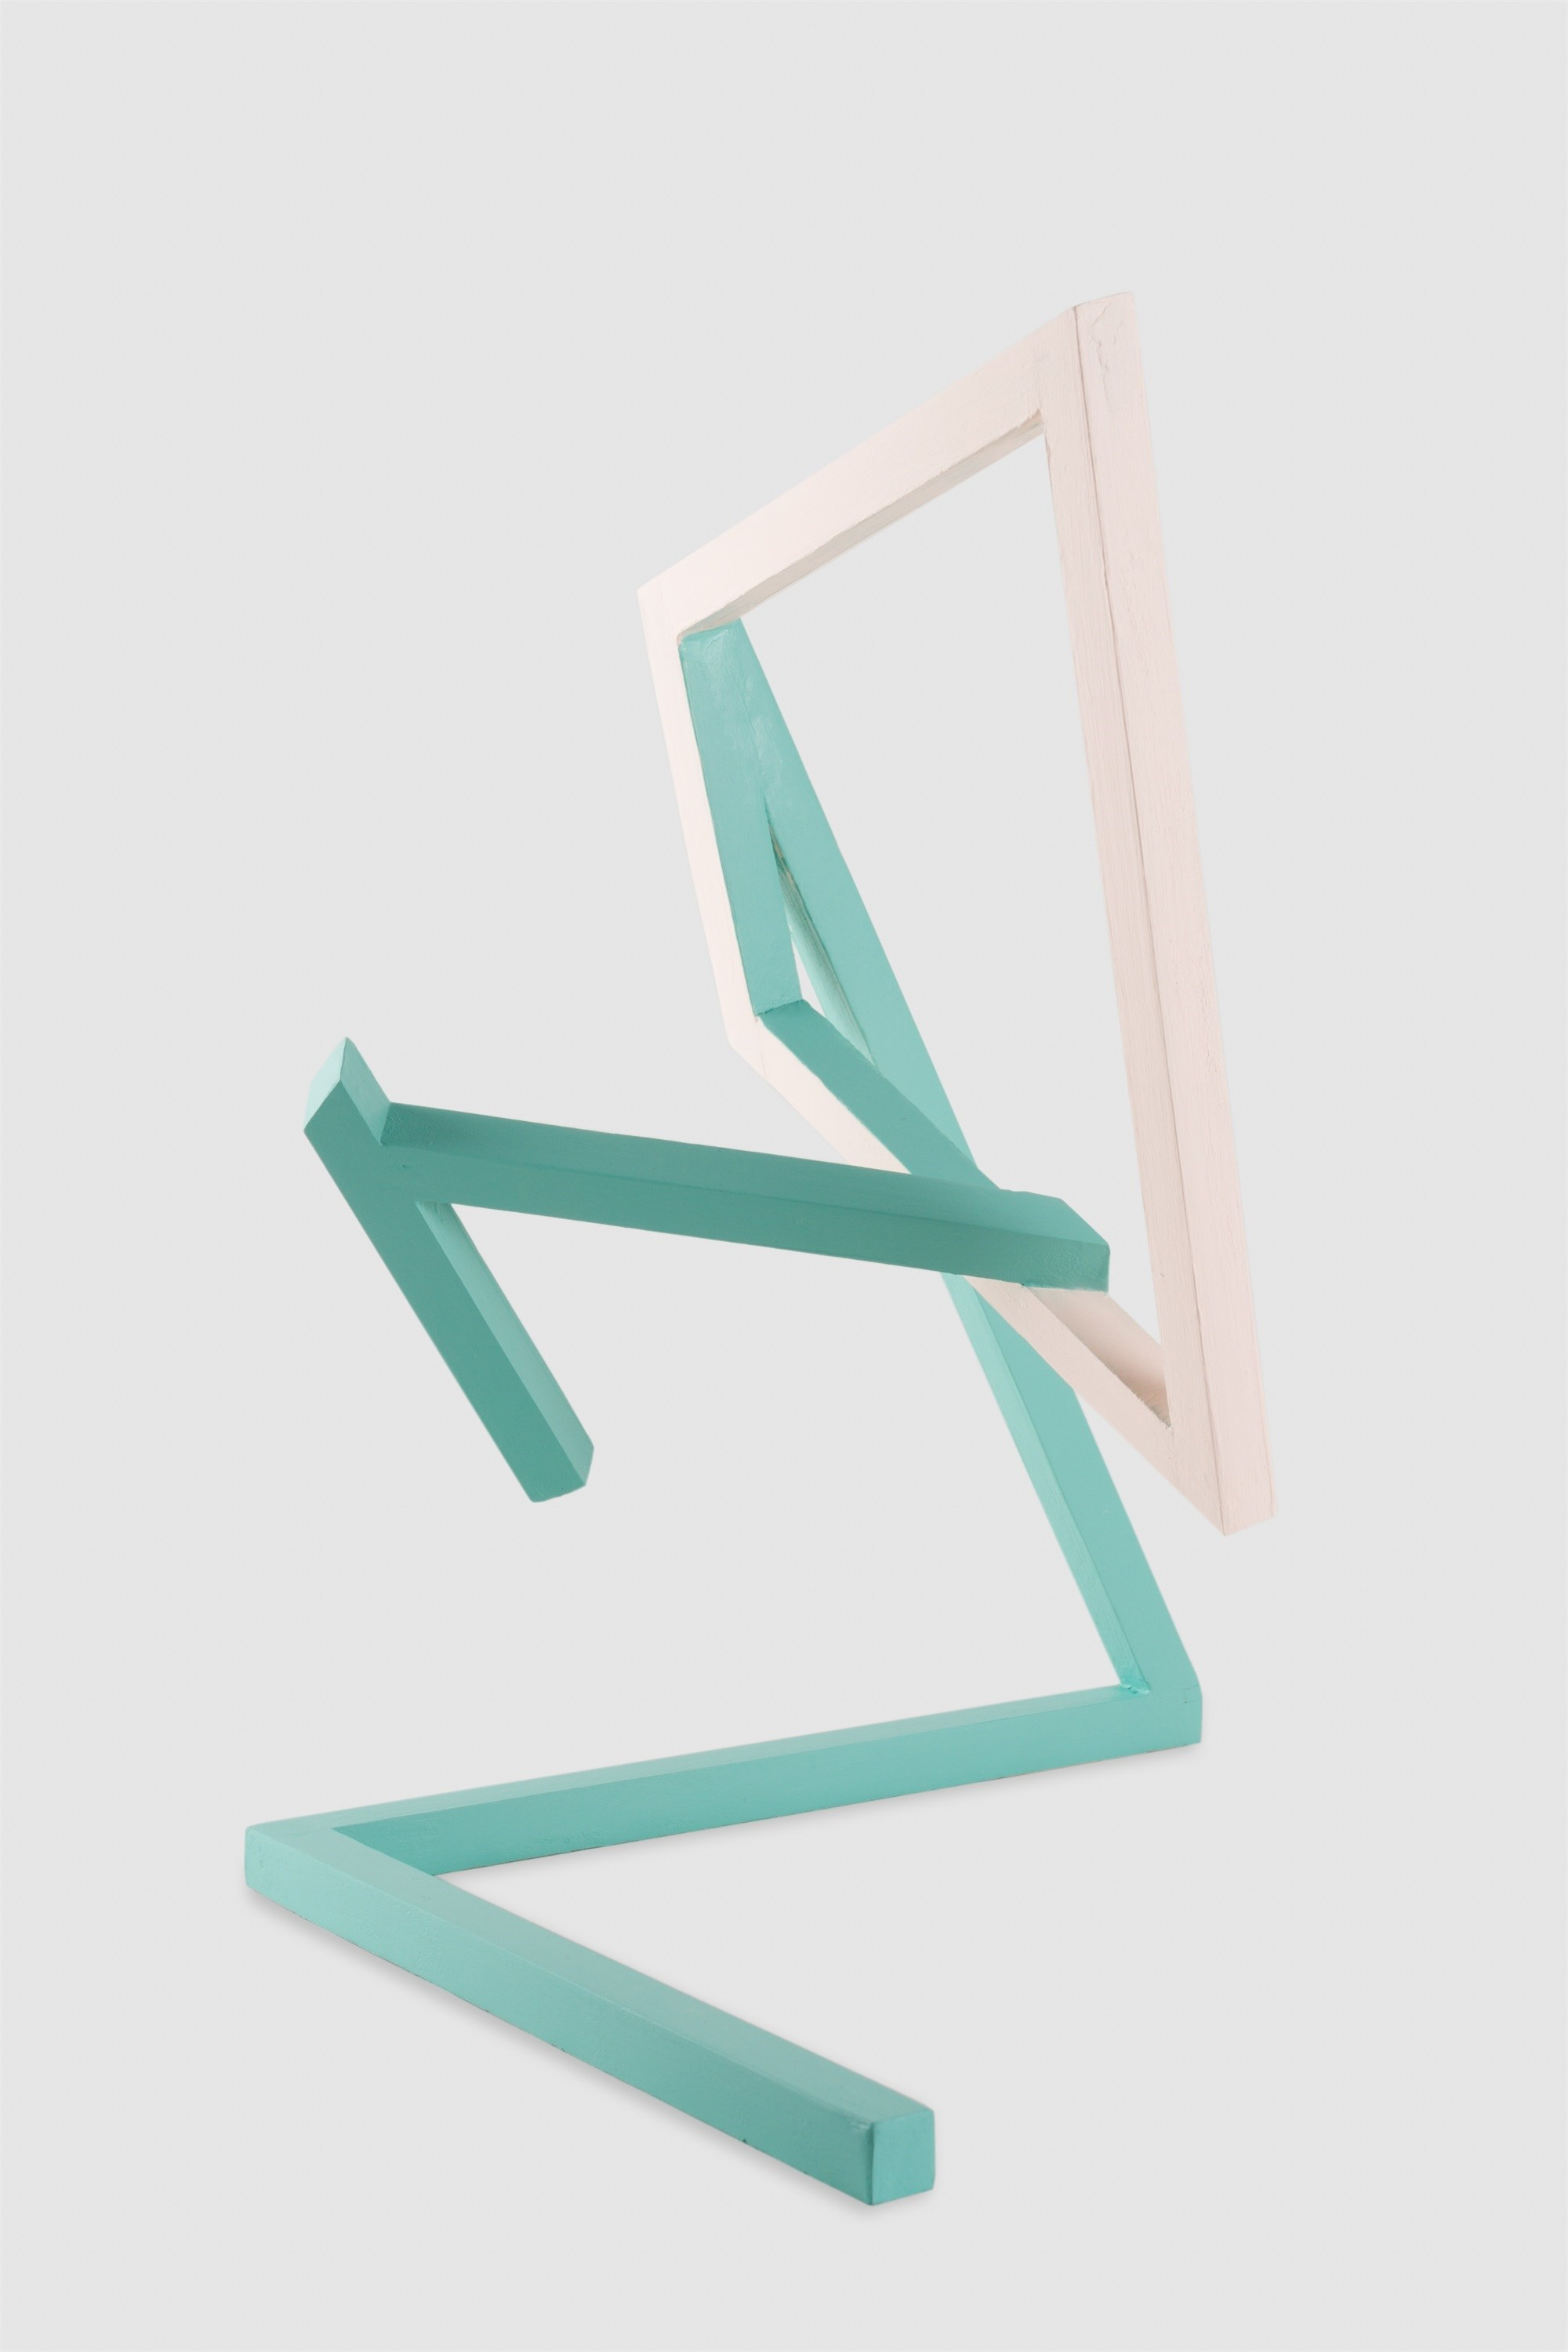 Object in Eb, original Geometric Acrylic Sculpture by Fátima Santos